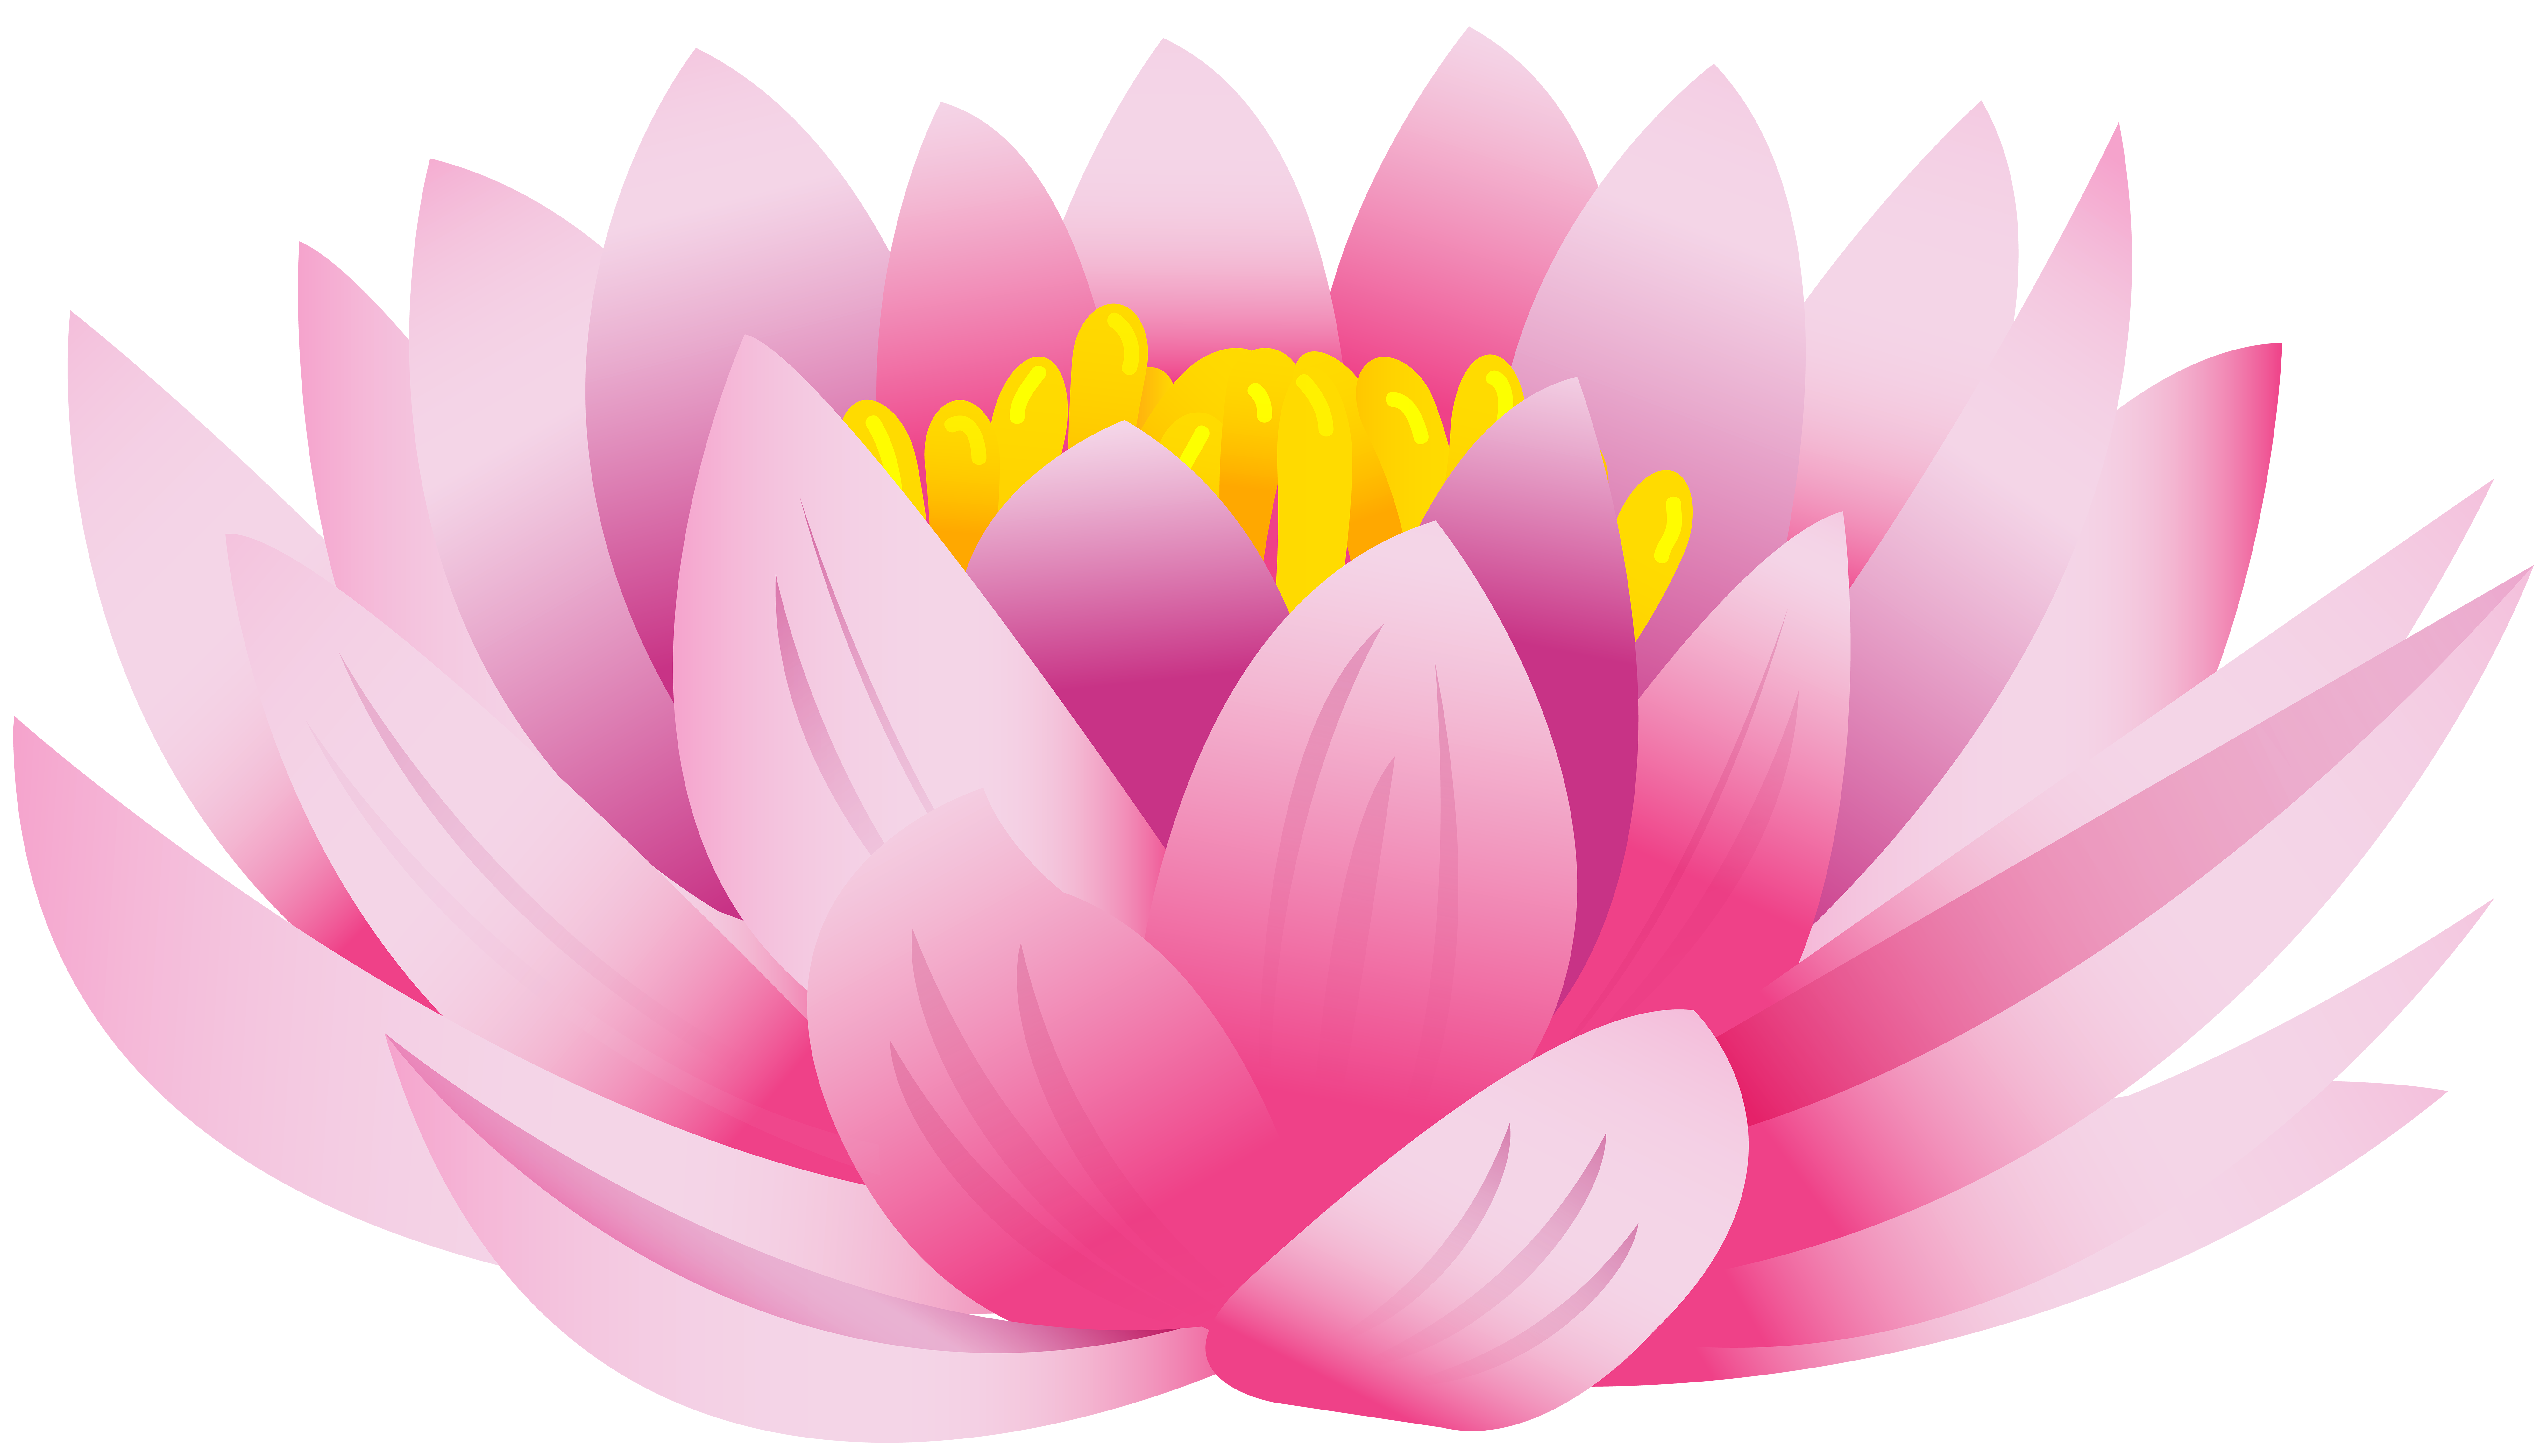 Clip art image gallery. Lotus flower graphic png